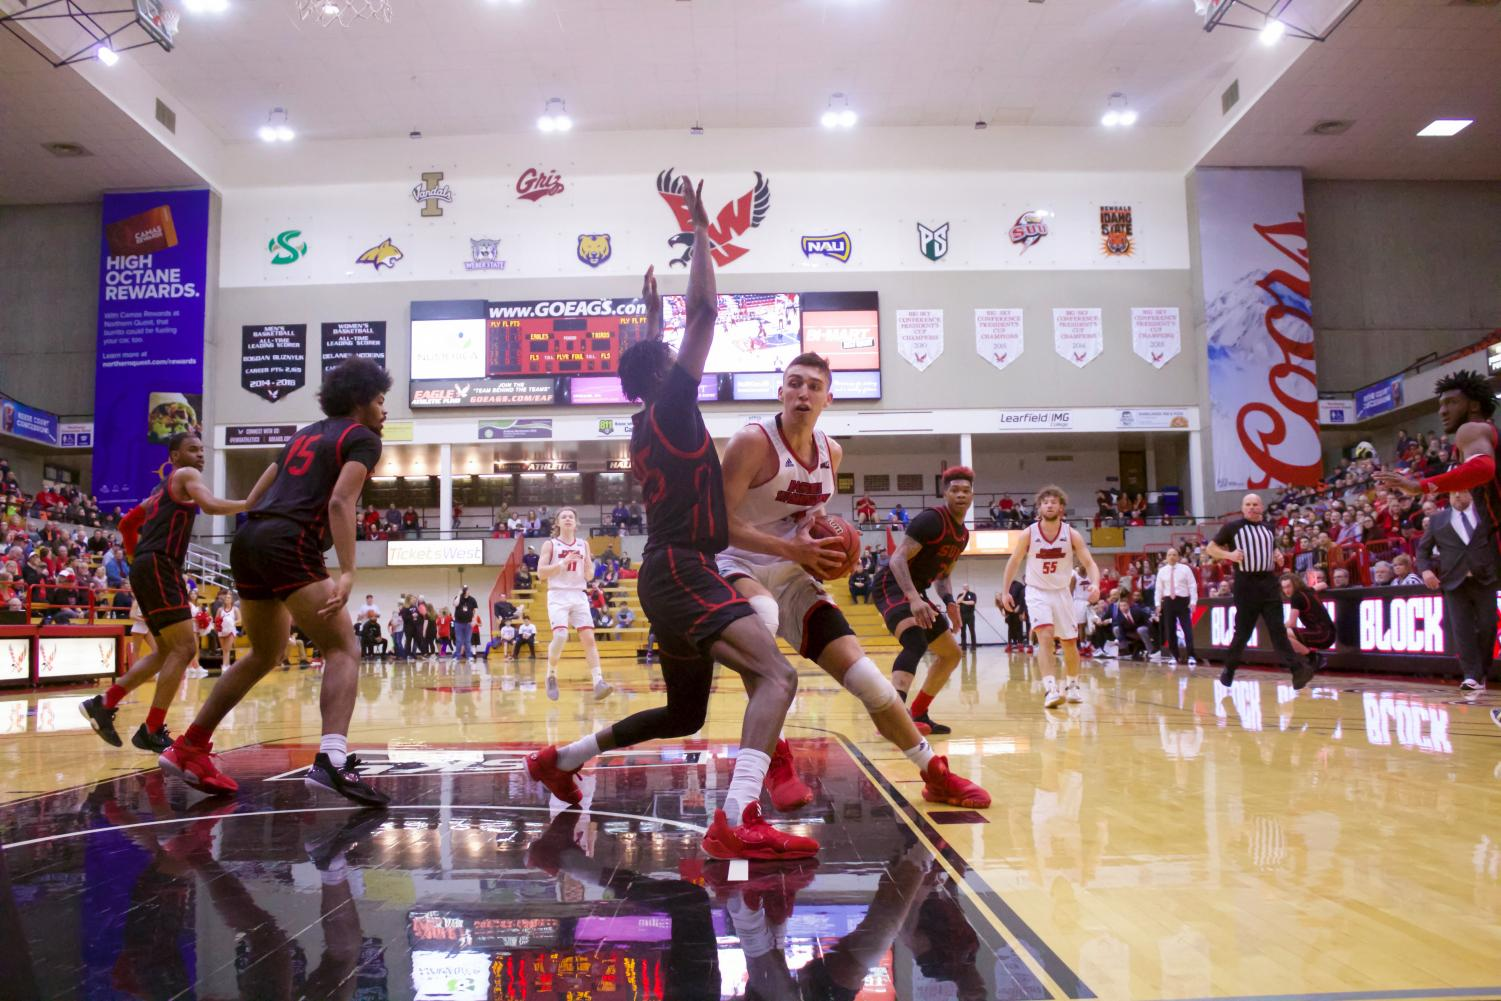 EWU senior forward Mason Peatling ducks in for a layup. Peatling scored 30 points and grabbed 11 rebounds in EWU's 81-78 victory over Southern Utah Saturday.